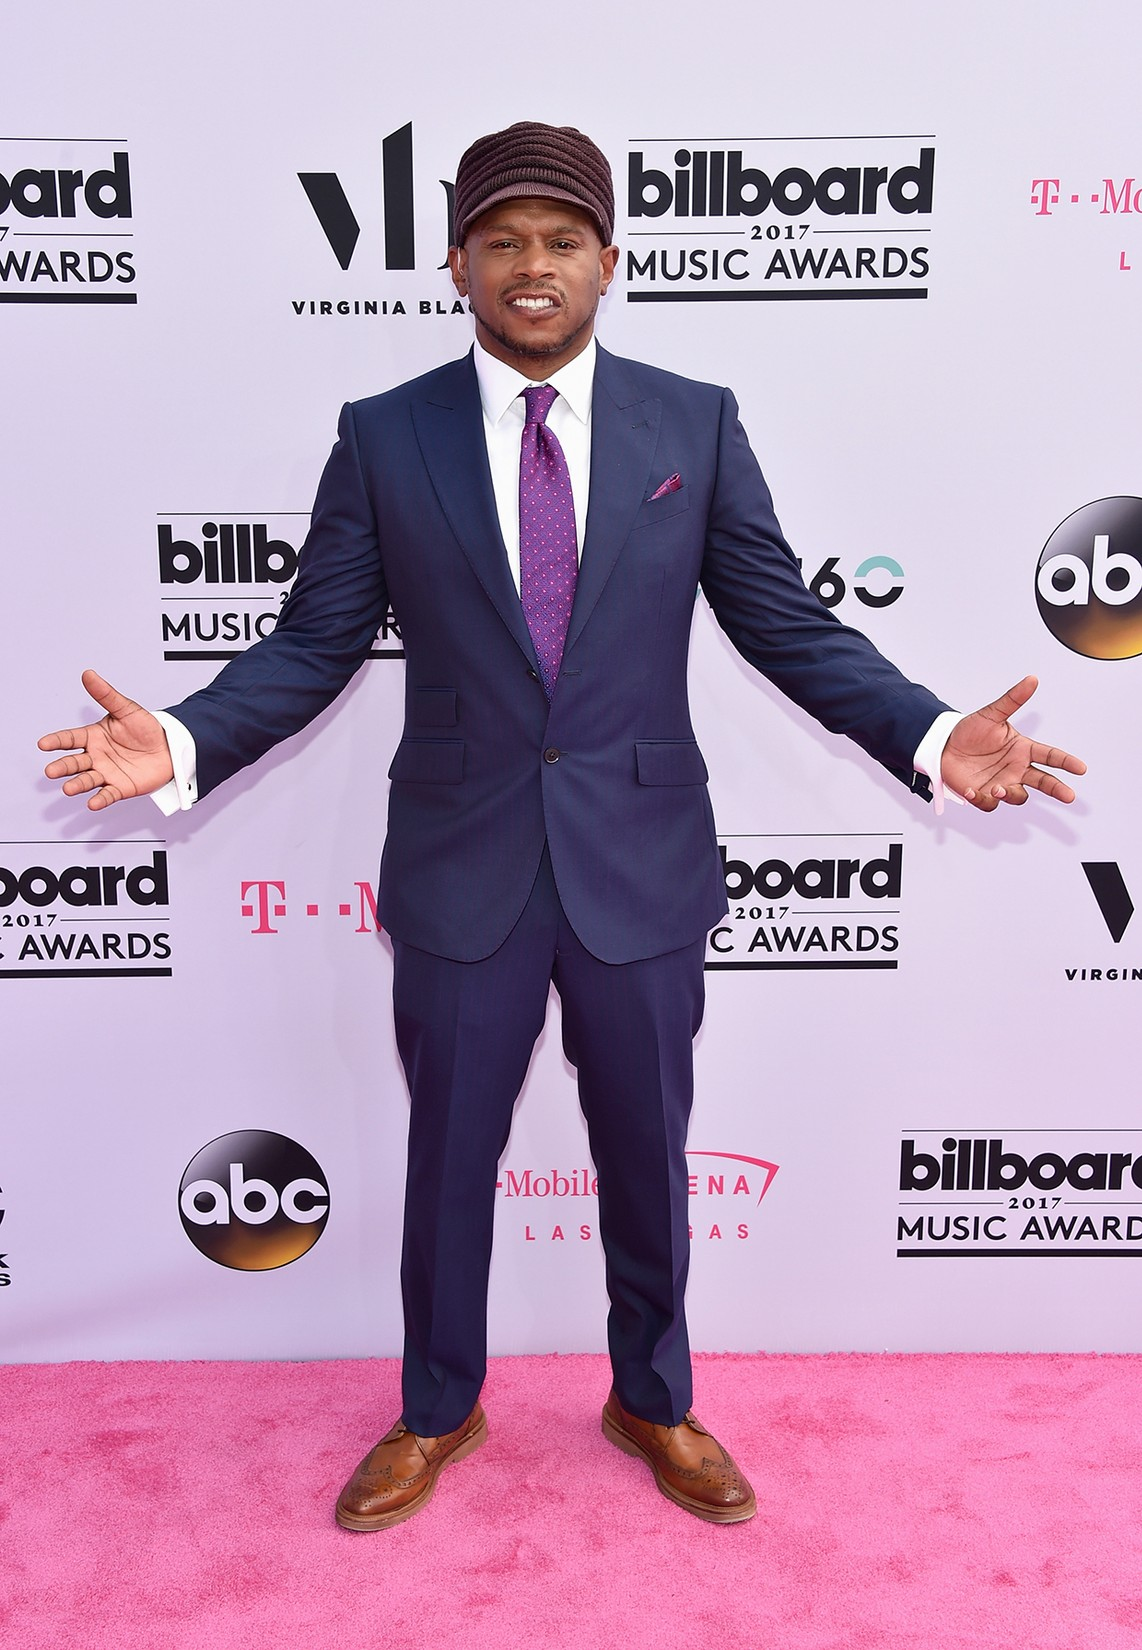 Sway Calloway attends the 2017 Billboard Music Awards at T-Mobile Arena on May 21, 2017 in Las Vegas.